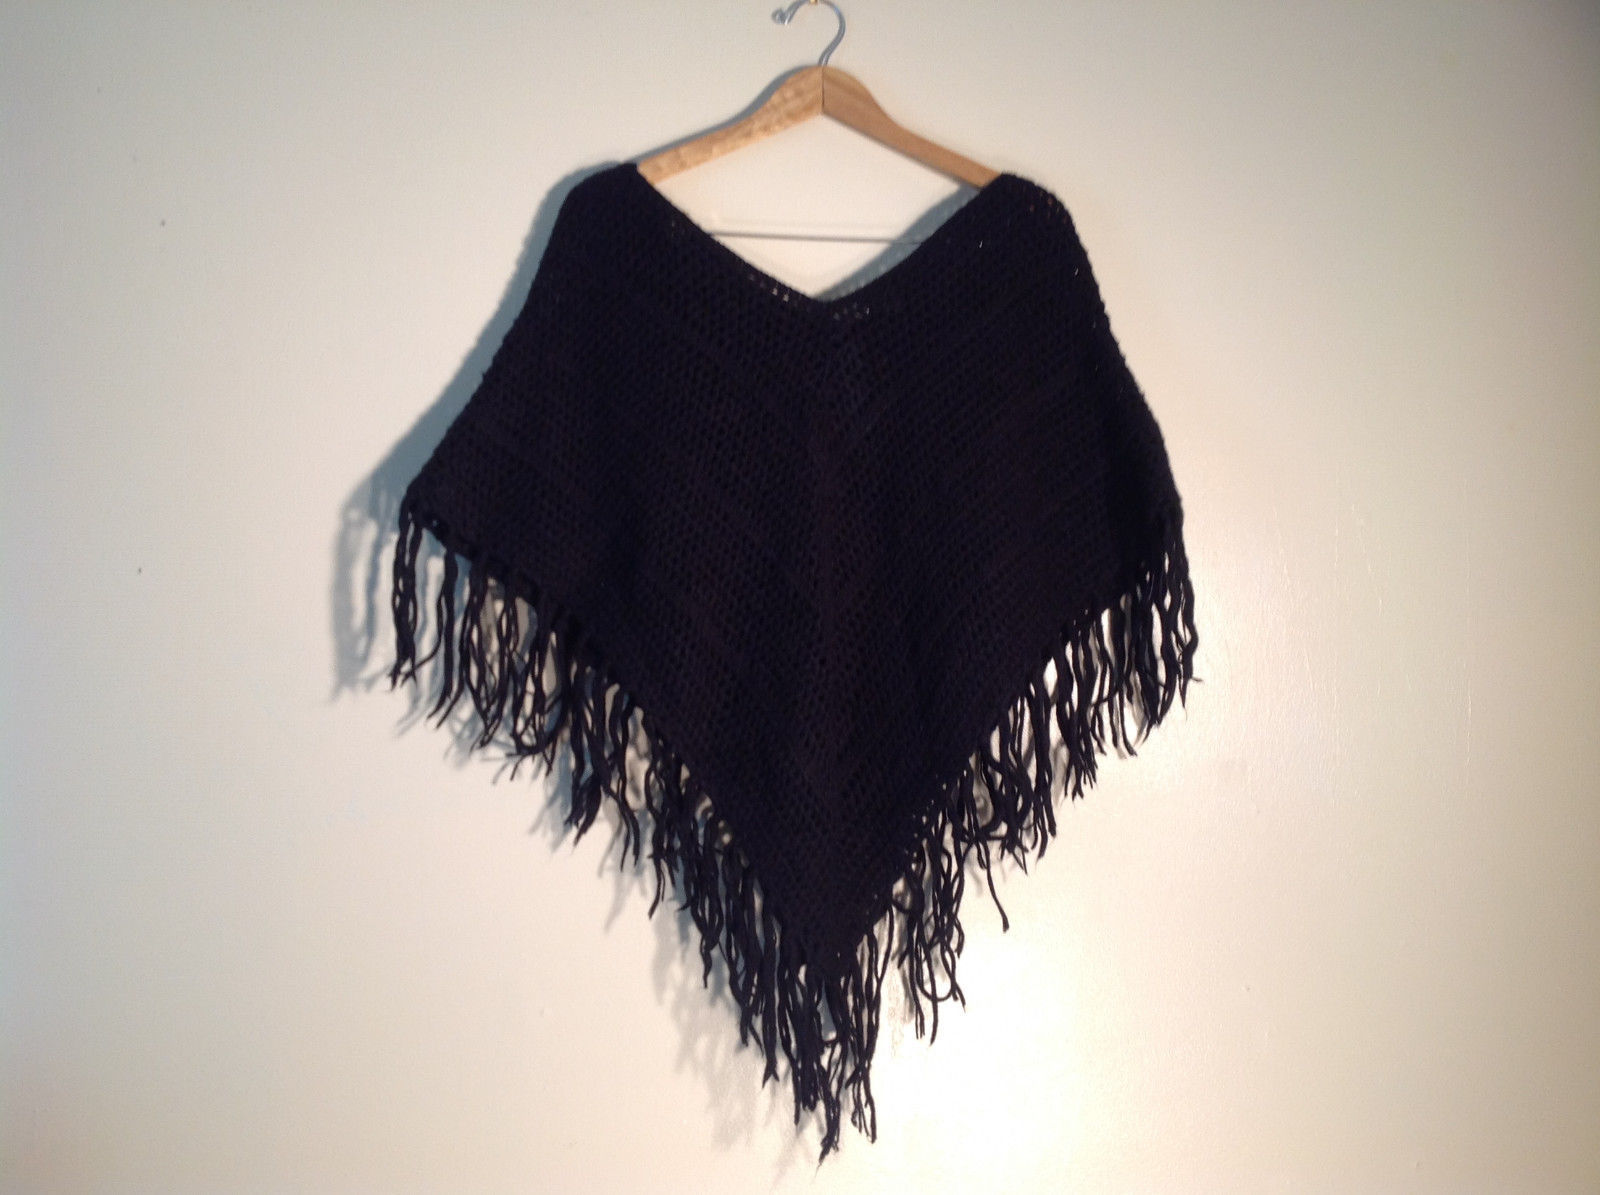 Unisex Black Knit Shawl Wrap Sweater Cover, Arizona Jean Co. 100% Acrylic great